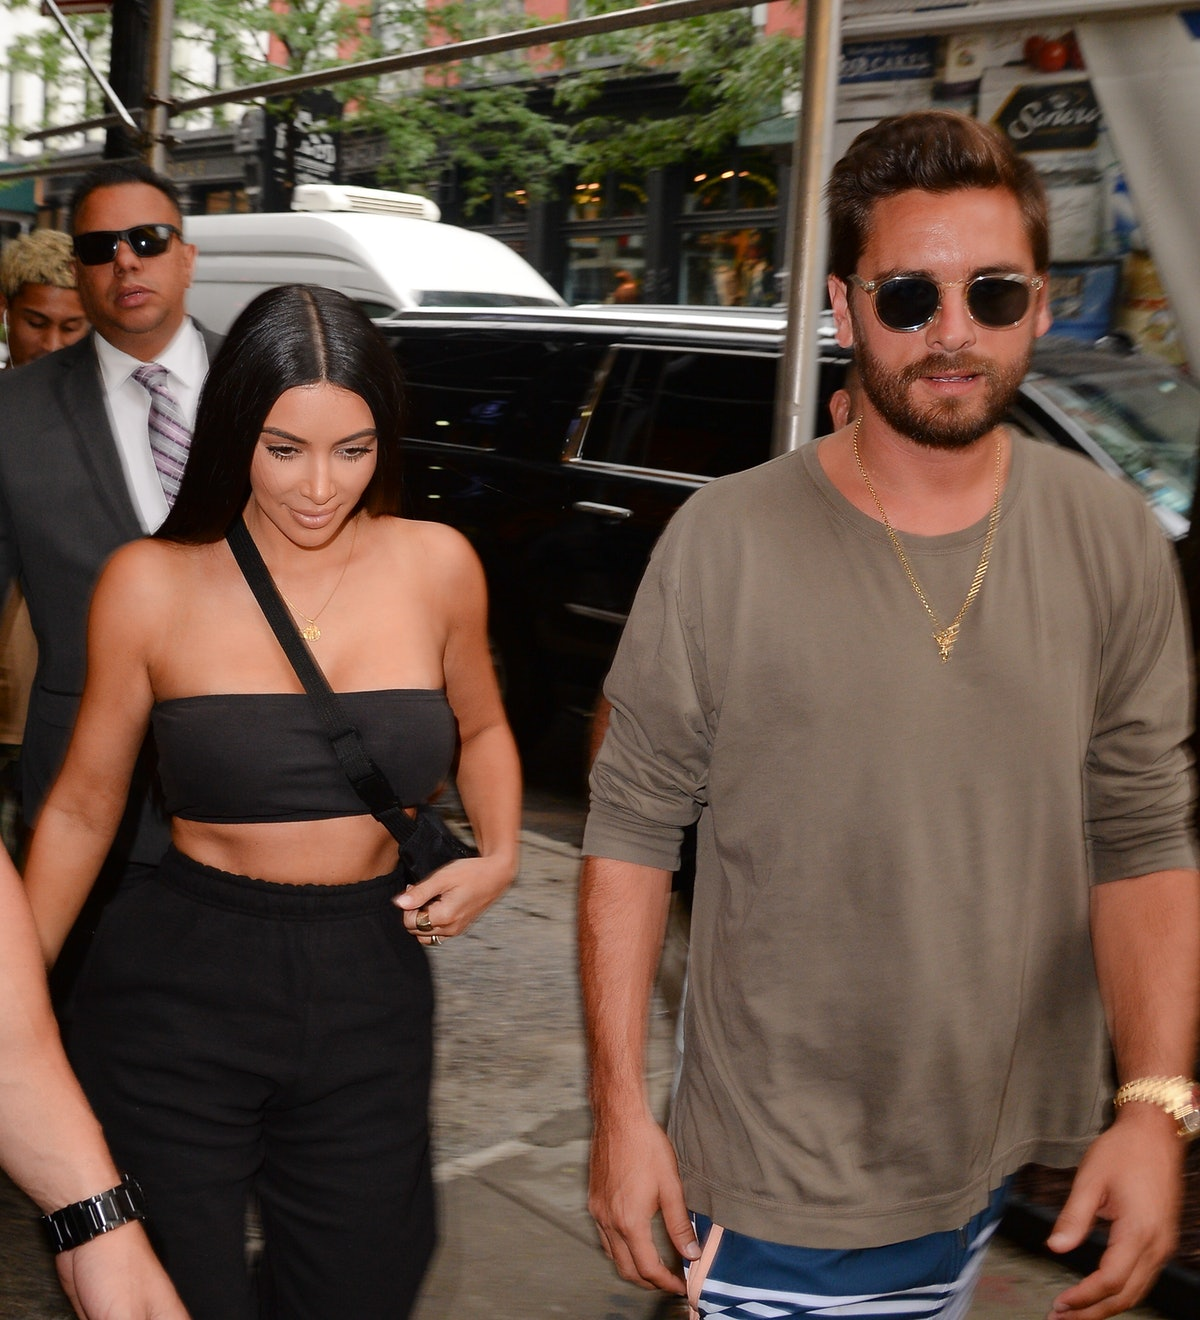 NEW YORK, NY - AUGUST 02:  Kim Kardashian and Scott Disick are seen on August 2, 2017 in New York City.  (Photo by Raymond Hall/GC Images)